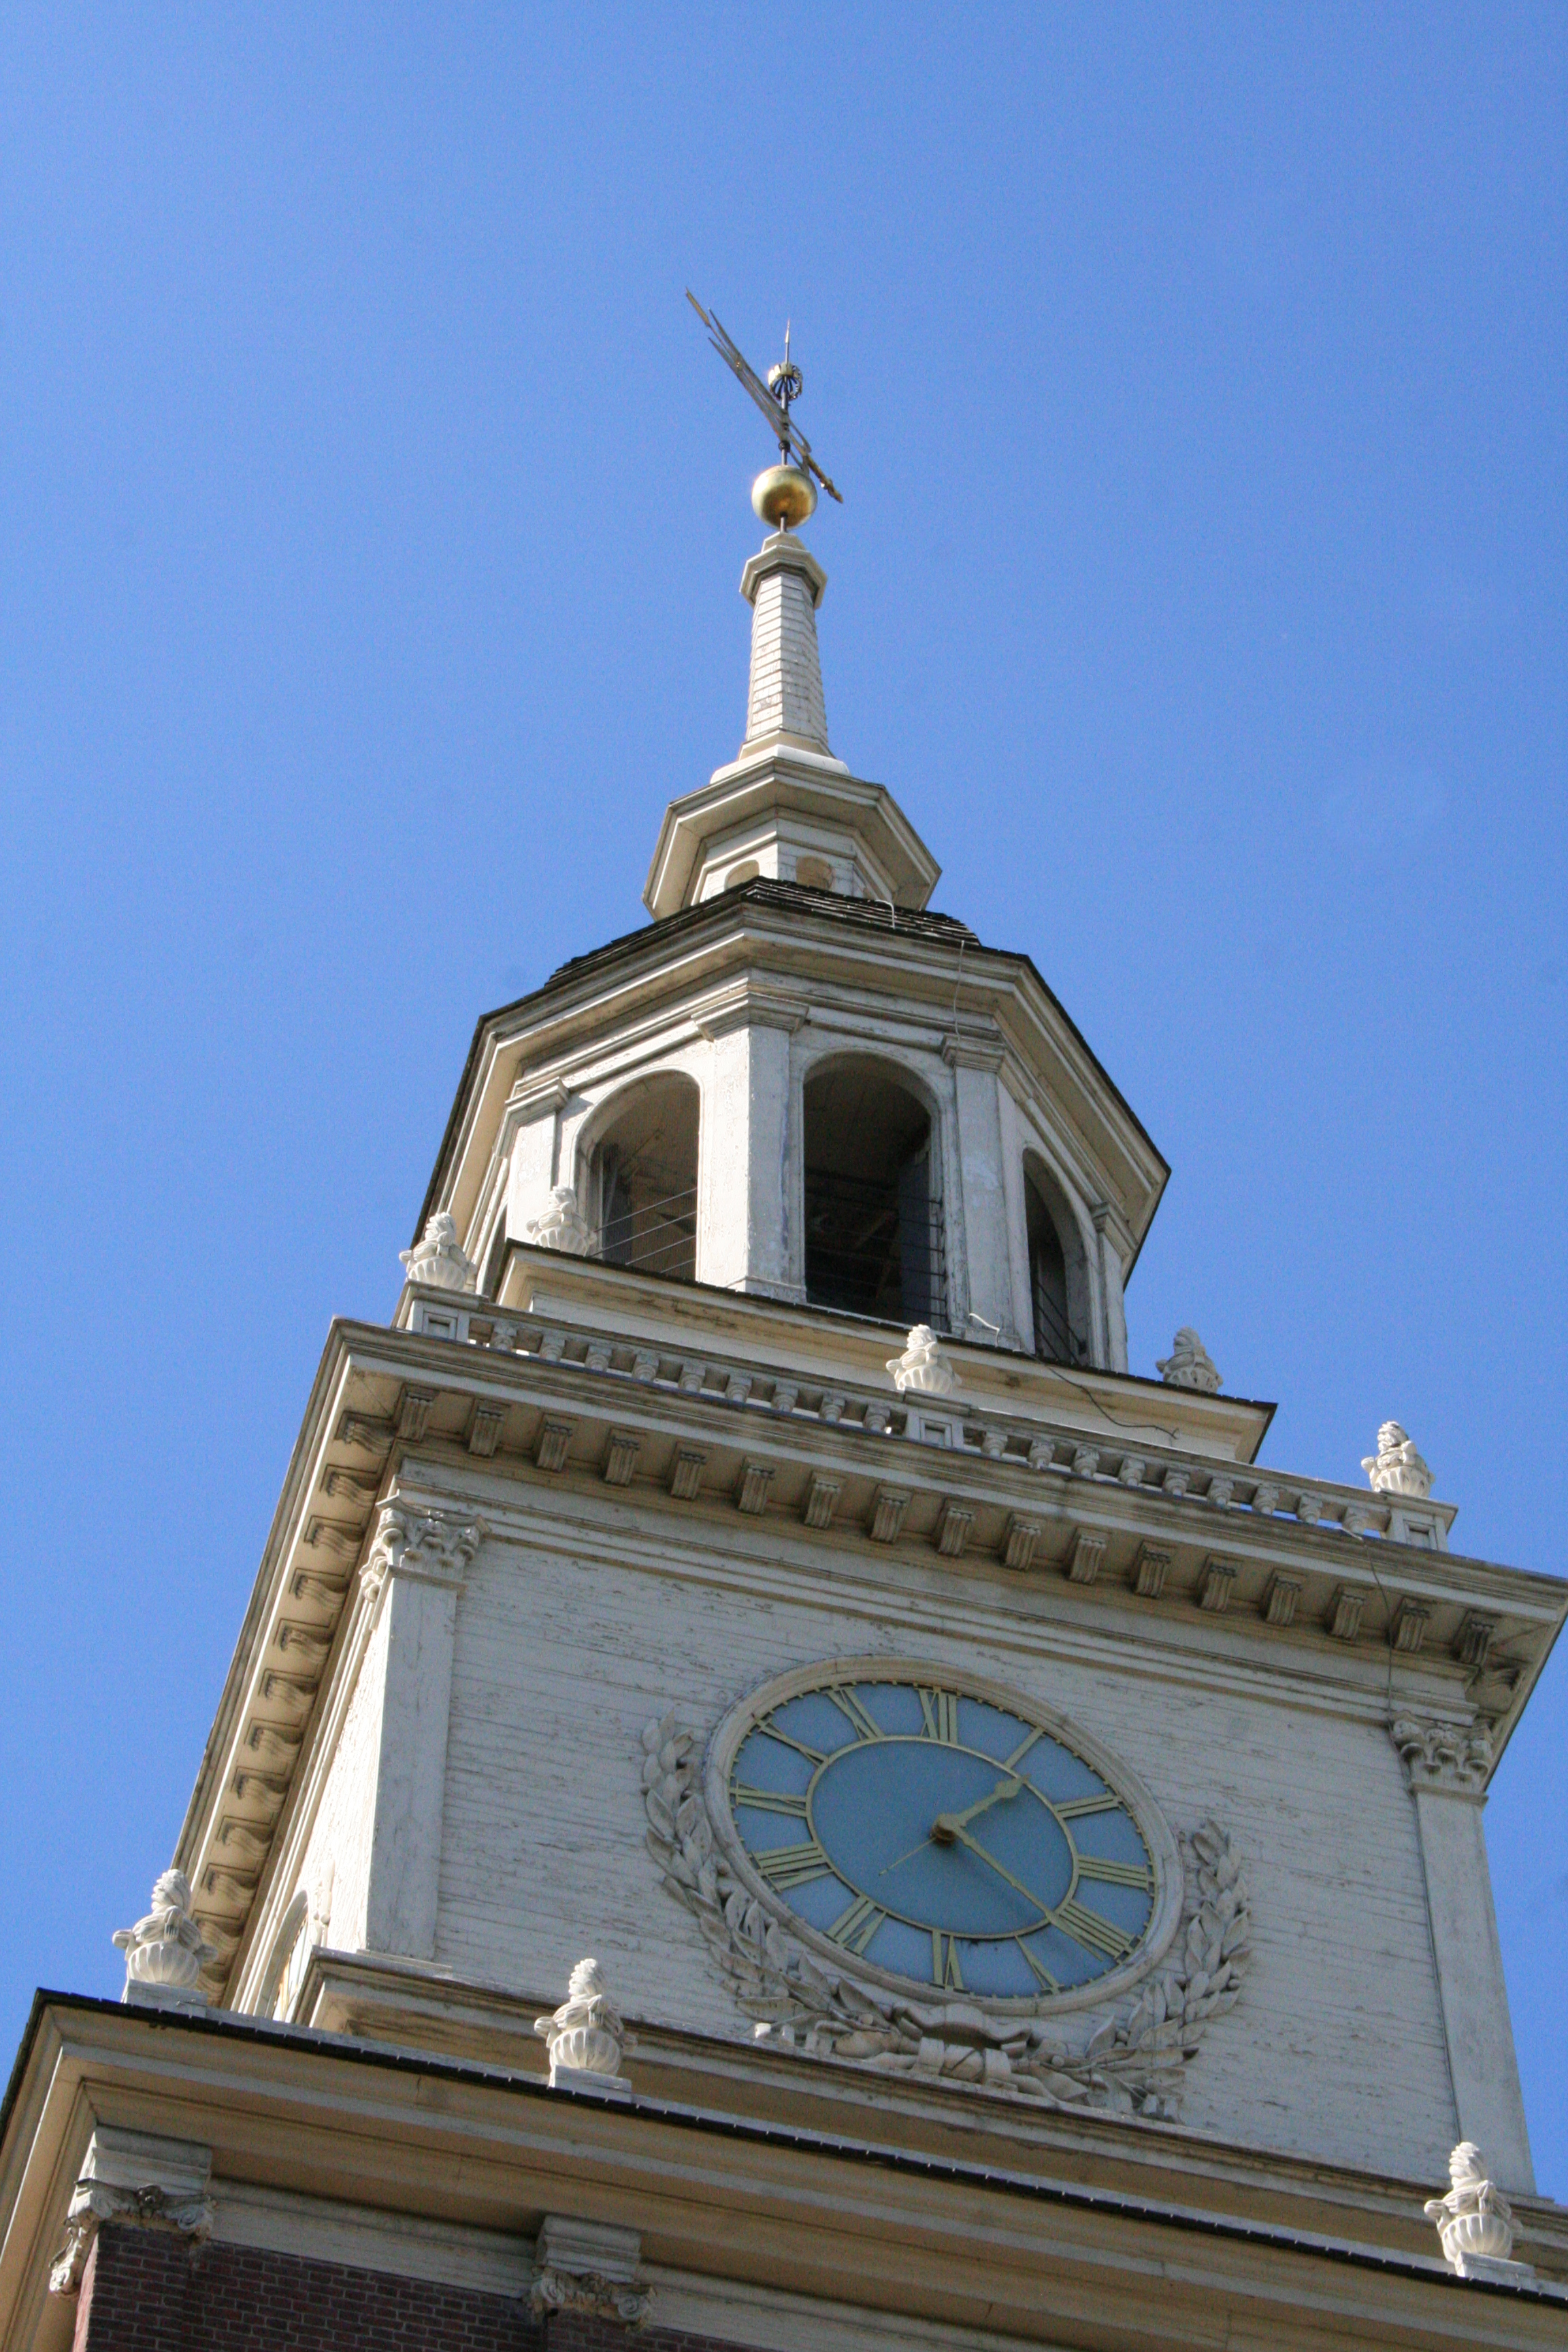 Belltower at Independence Hall in Philadelphia in the Commonwealth of Pennsylvania